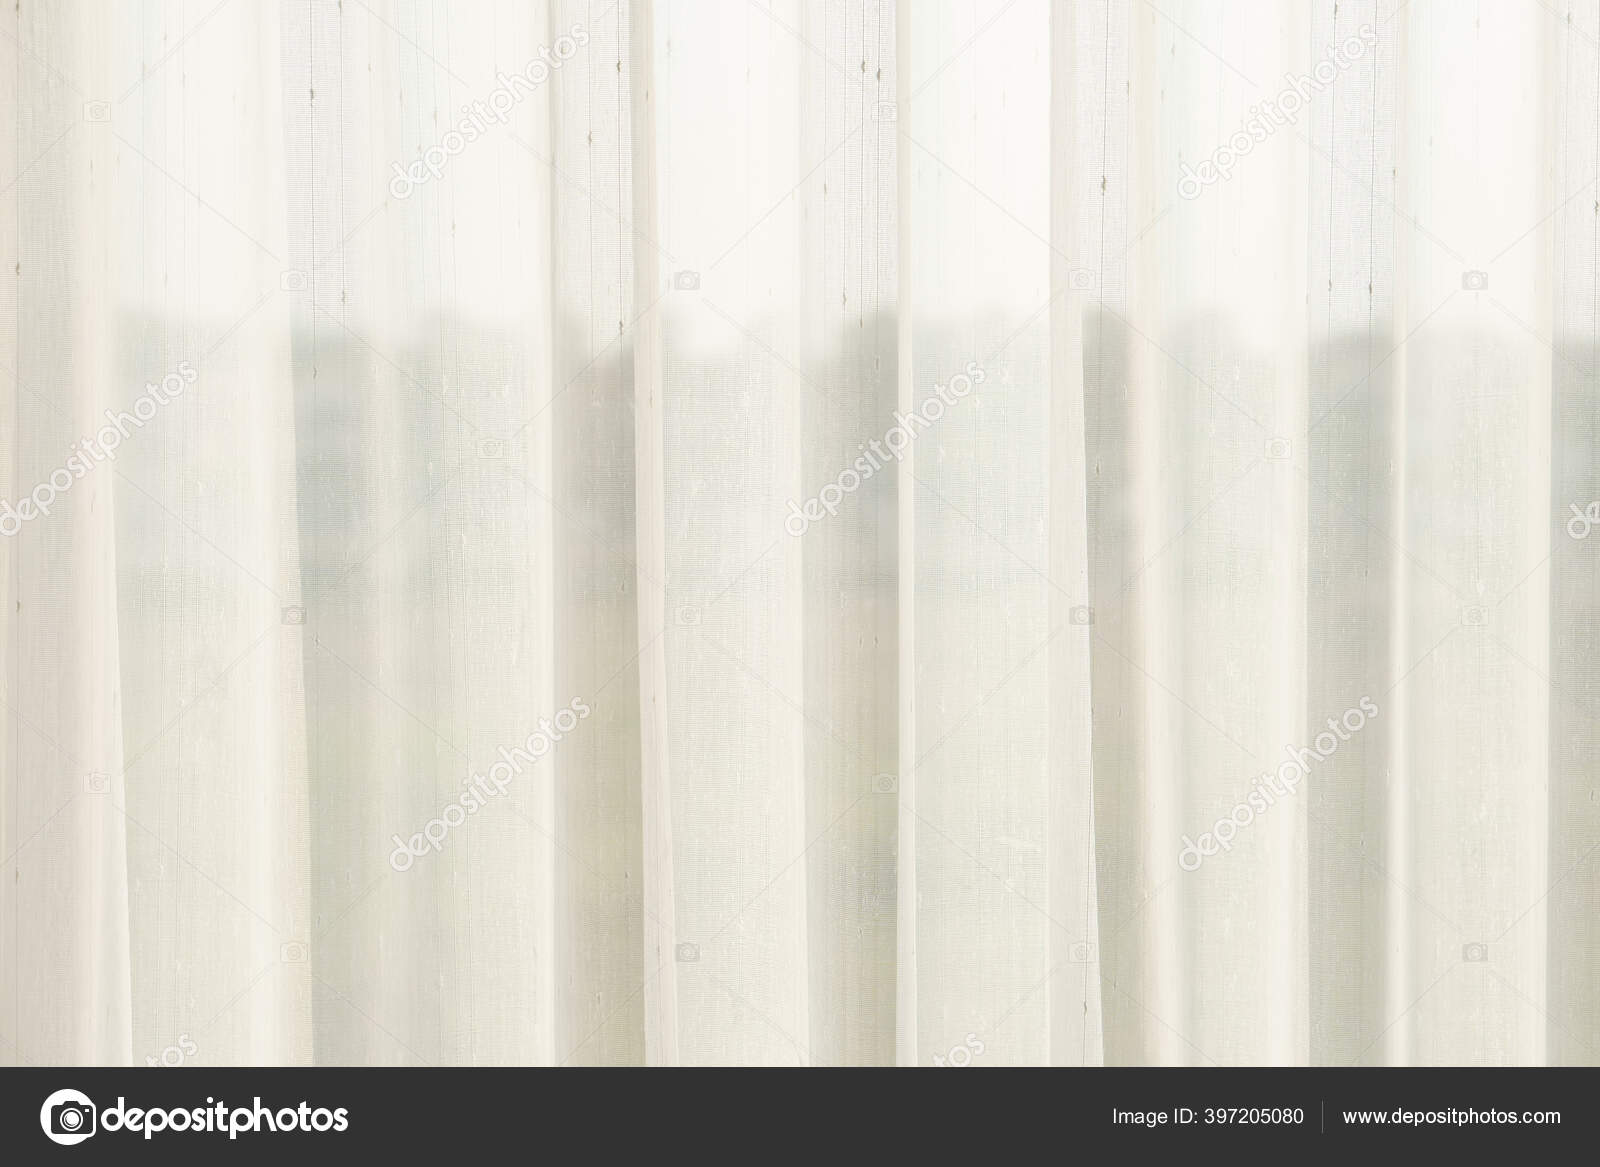 Airy Thin Transparent White Curtain Texture See Soft Light Window Stock Photo Image By Kornnphoto 397205080